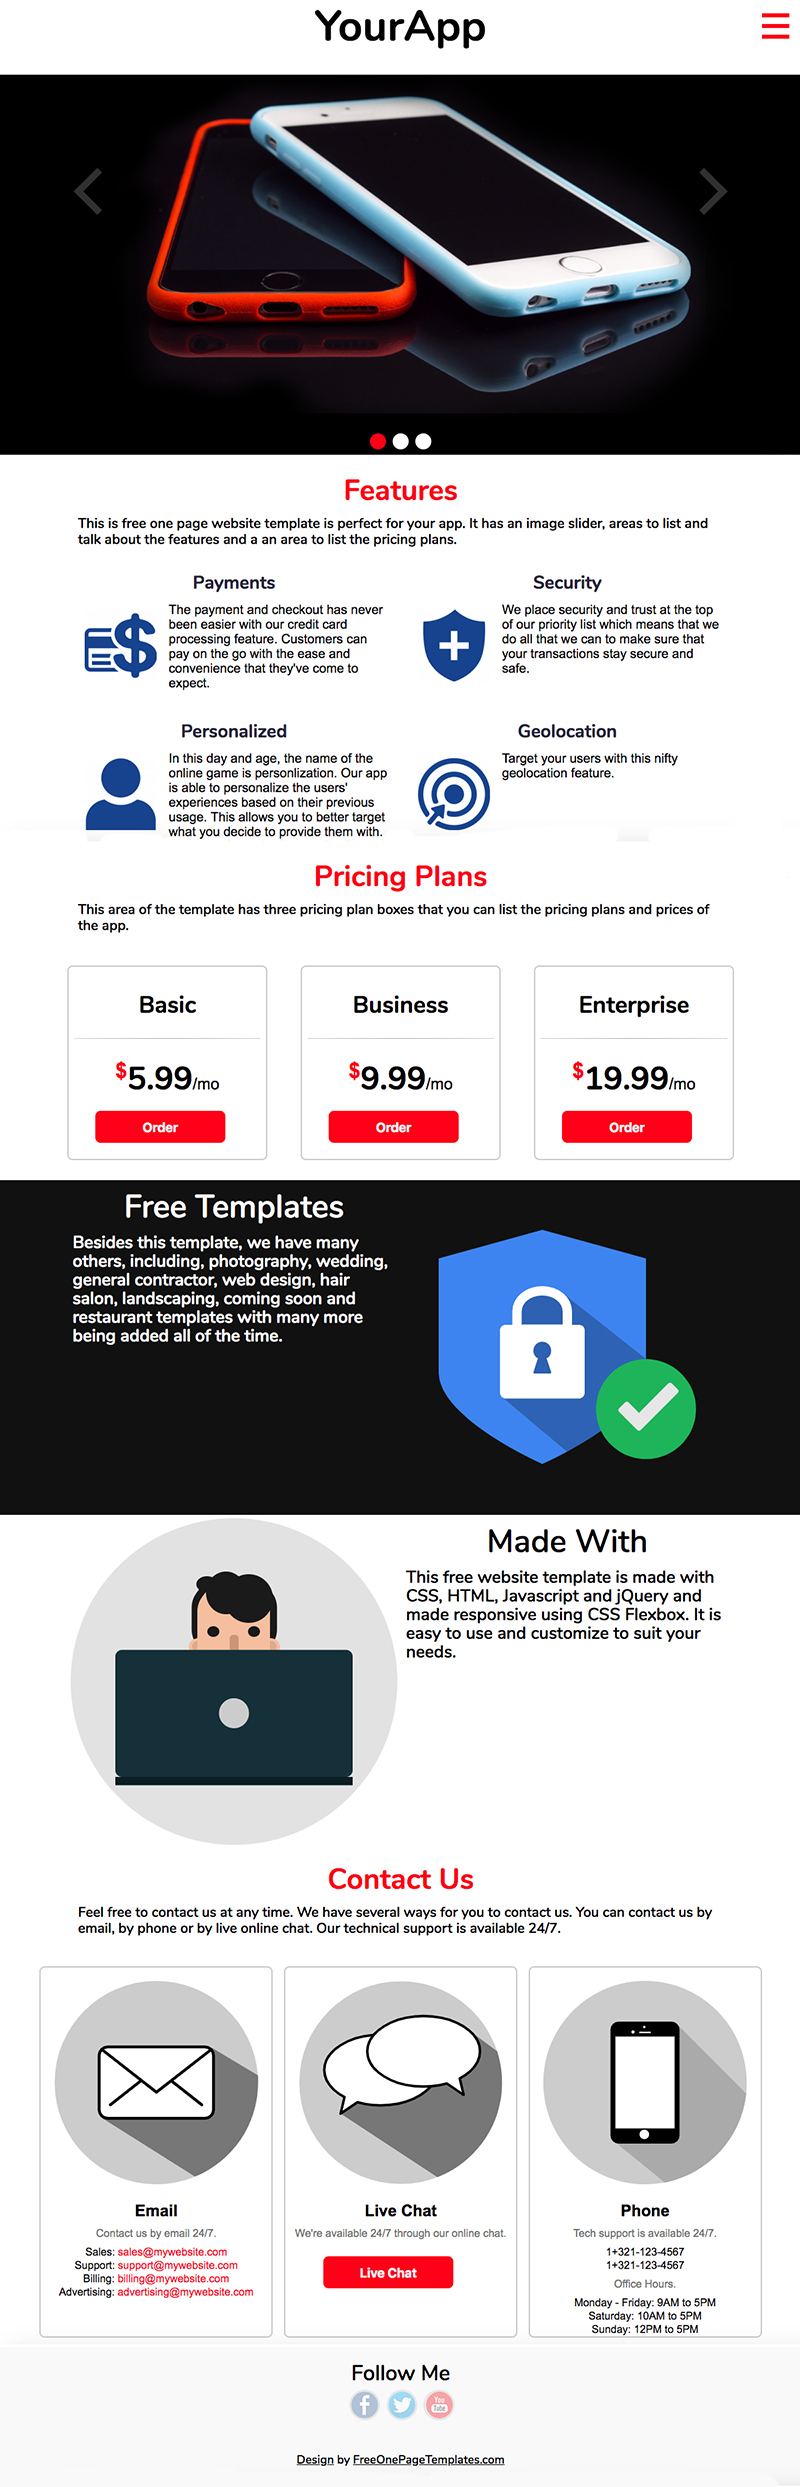 Free One Page App Website Template - YourApp